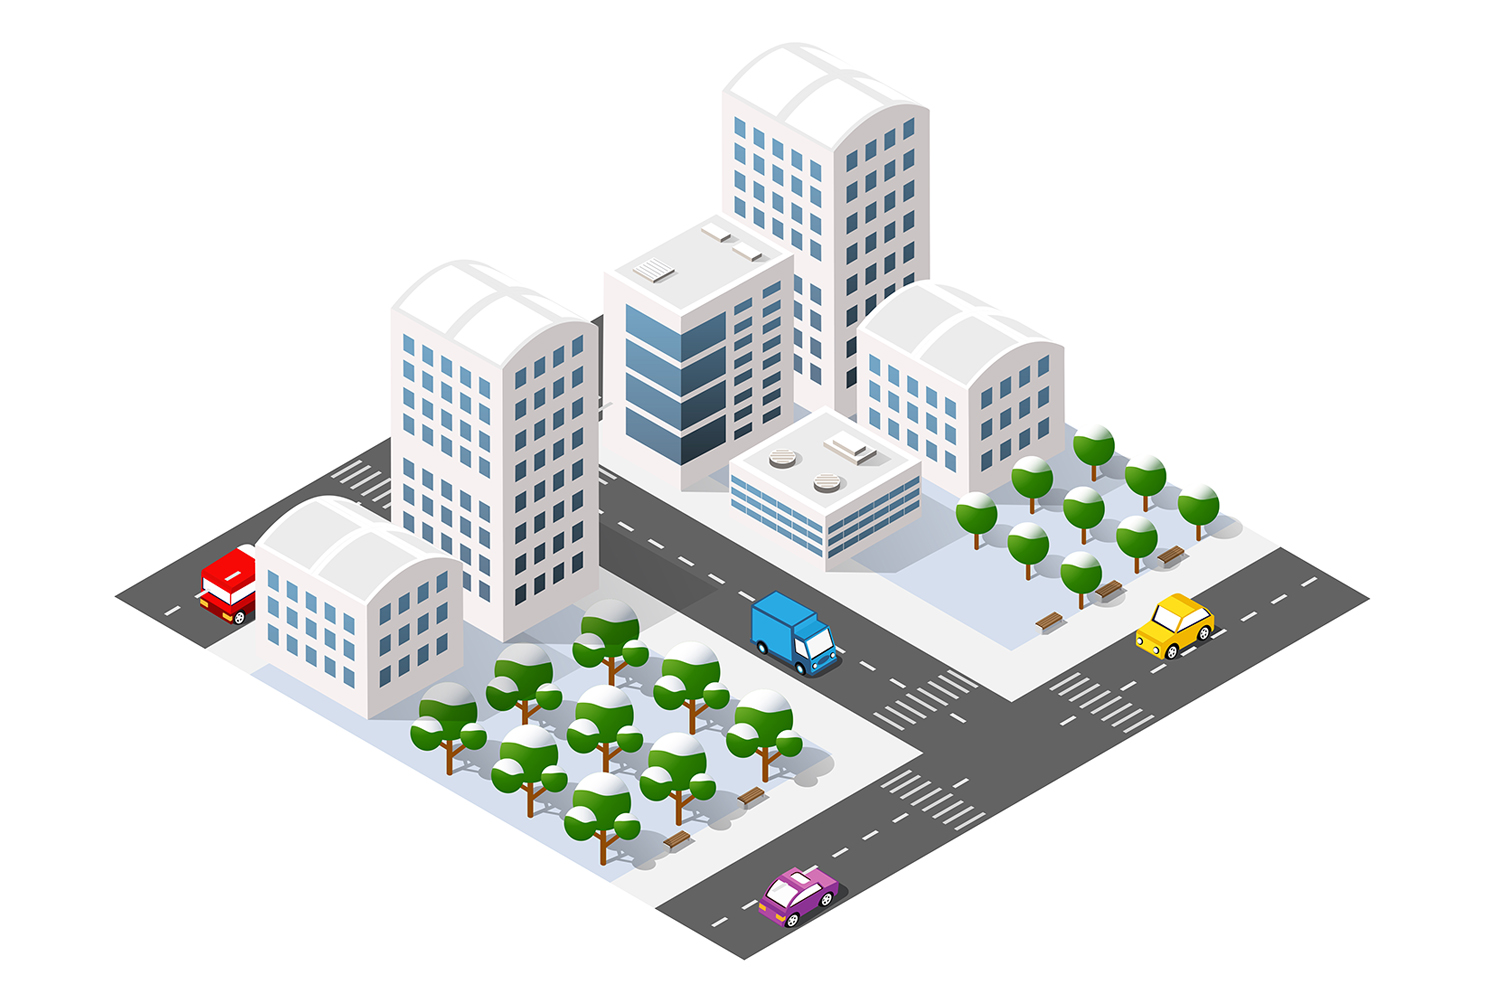 Winter city isometric with buildings example image 1